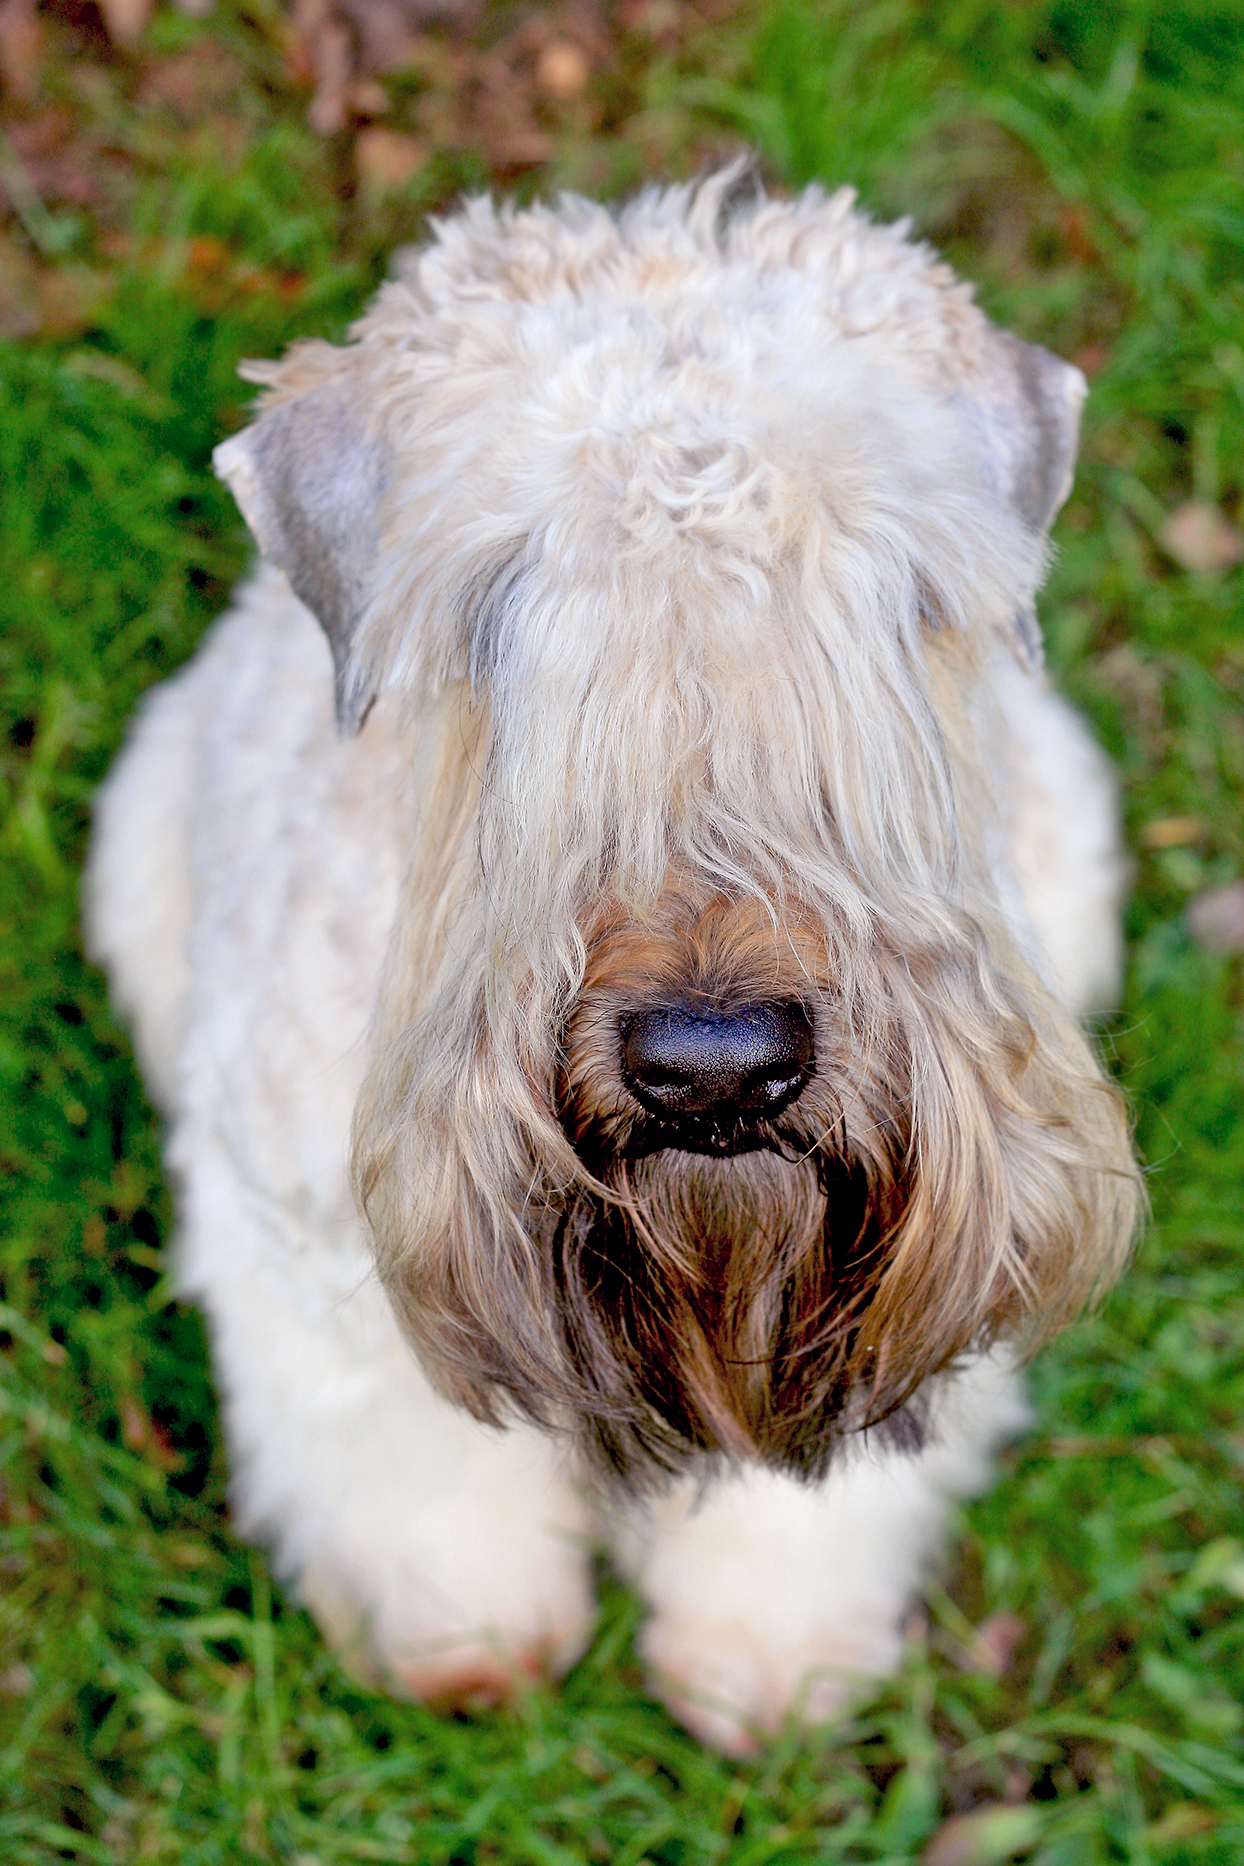 Close-up of soft-coated wheaten terrier with eyes covered in fur